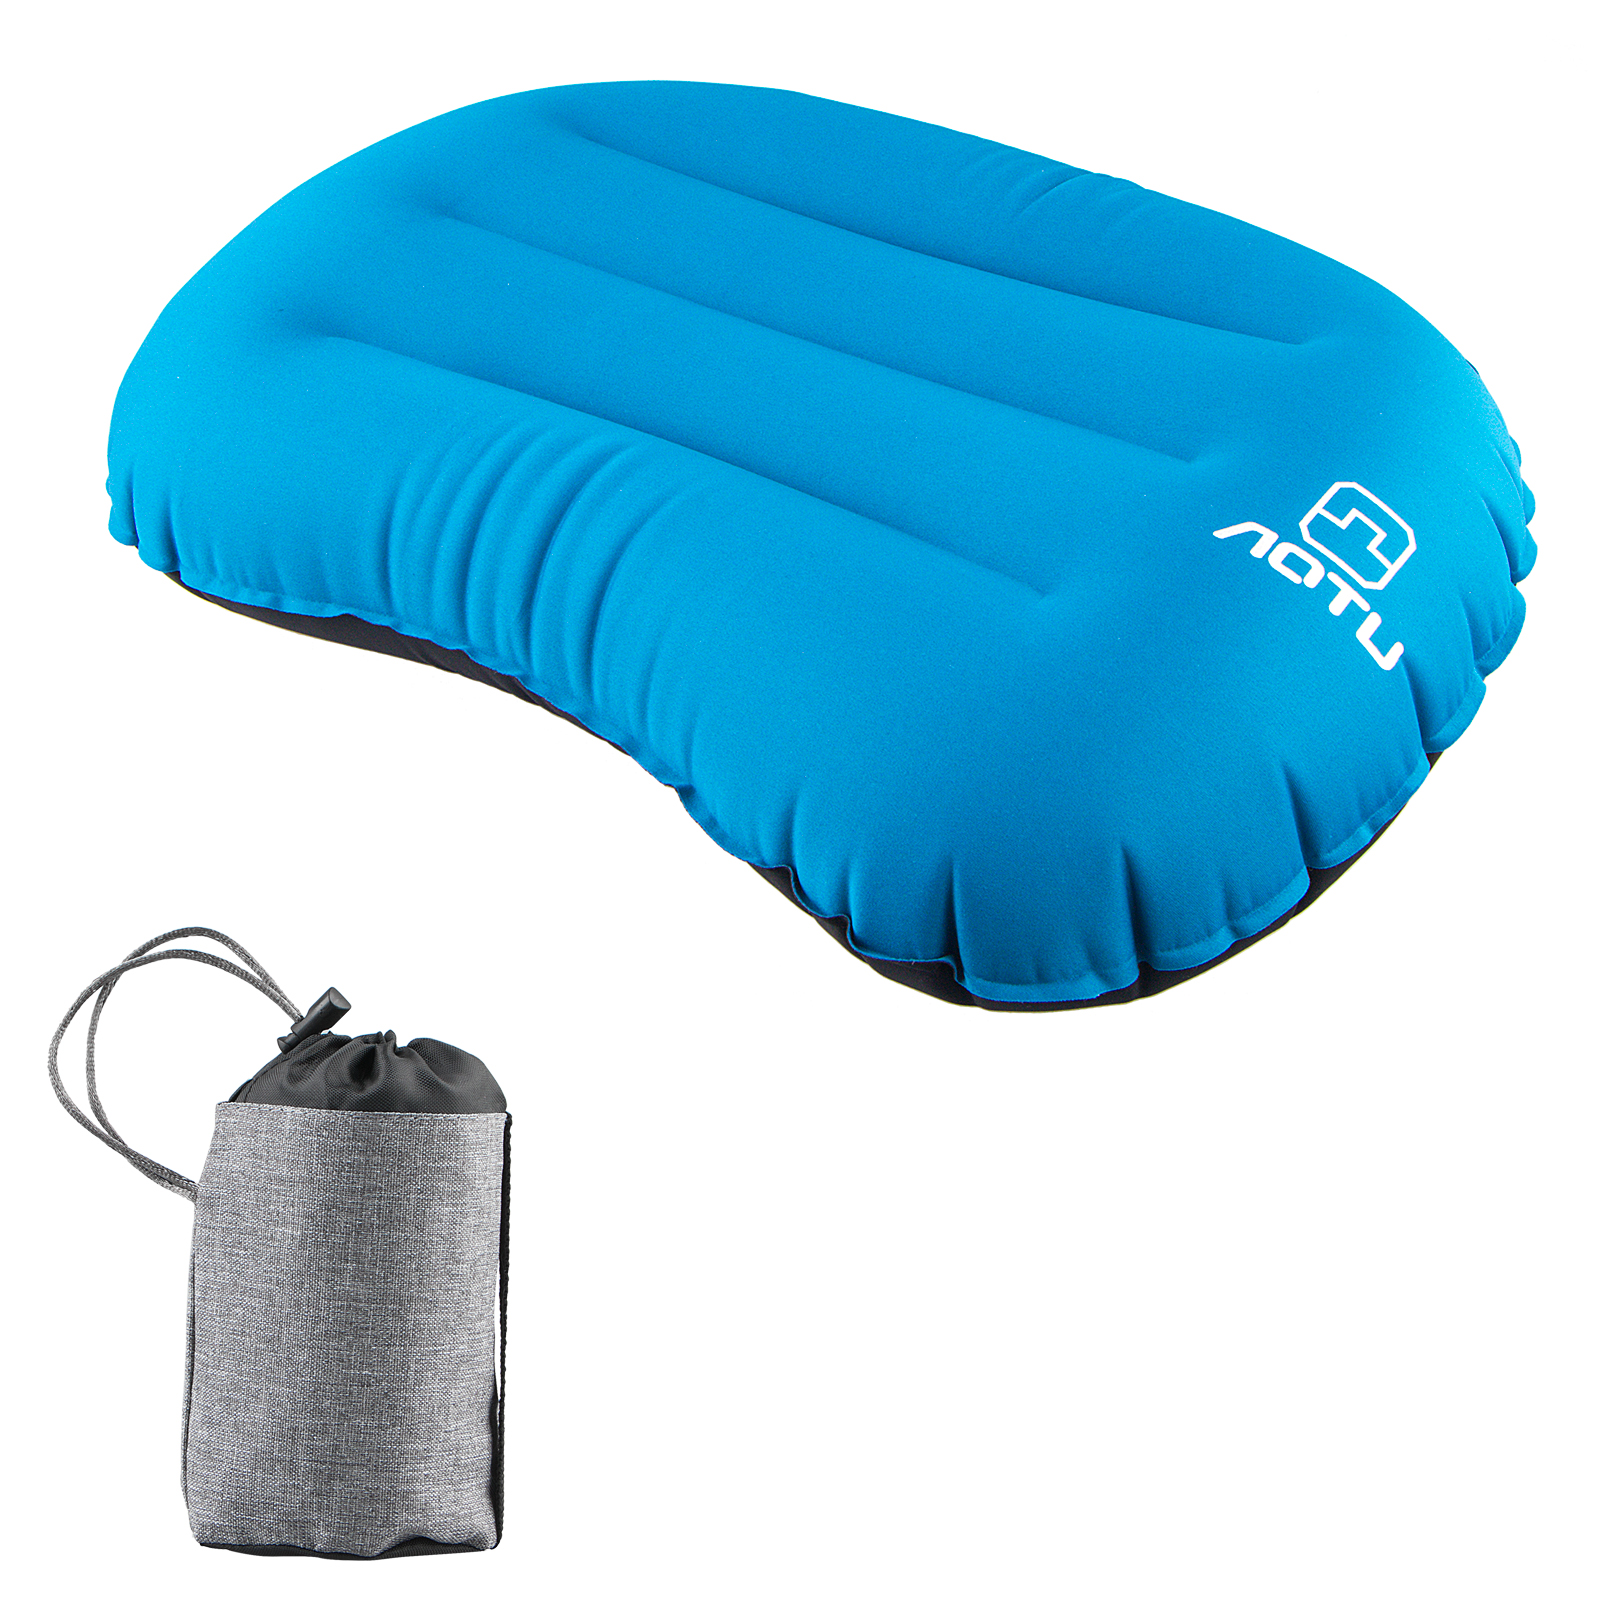 EEEKit Air Compressible Portable Blow Up Ultralight Inflatable Camping Outdoor Pillow, Inflating Comfortable Compact Lightweight Pillow for Neck & Lumbar Support and a Good Night Sleep, Backpacking